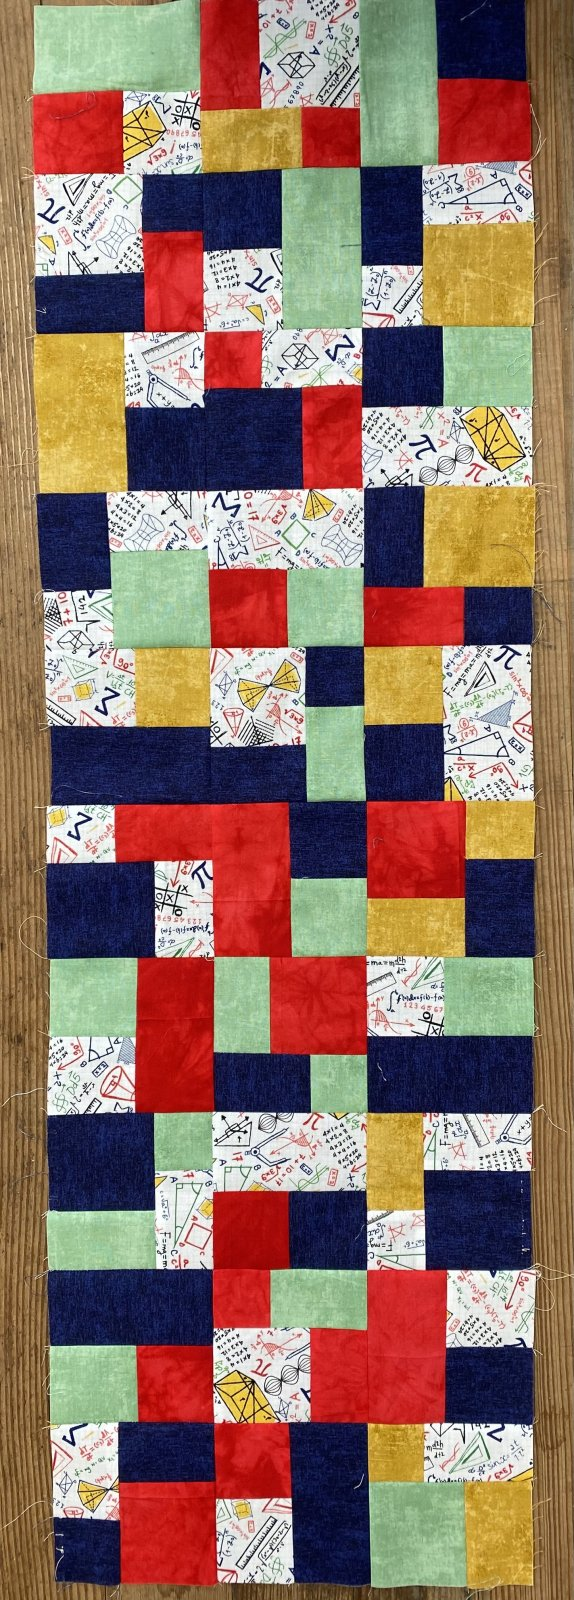 Time for Math Mini Brick Road Table Runner